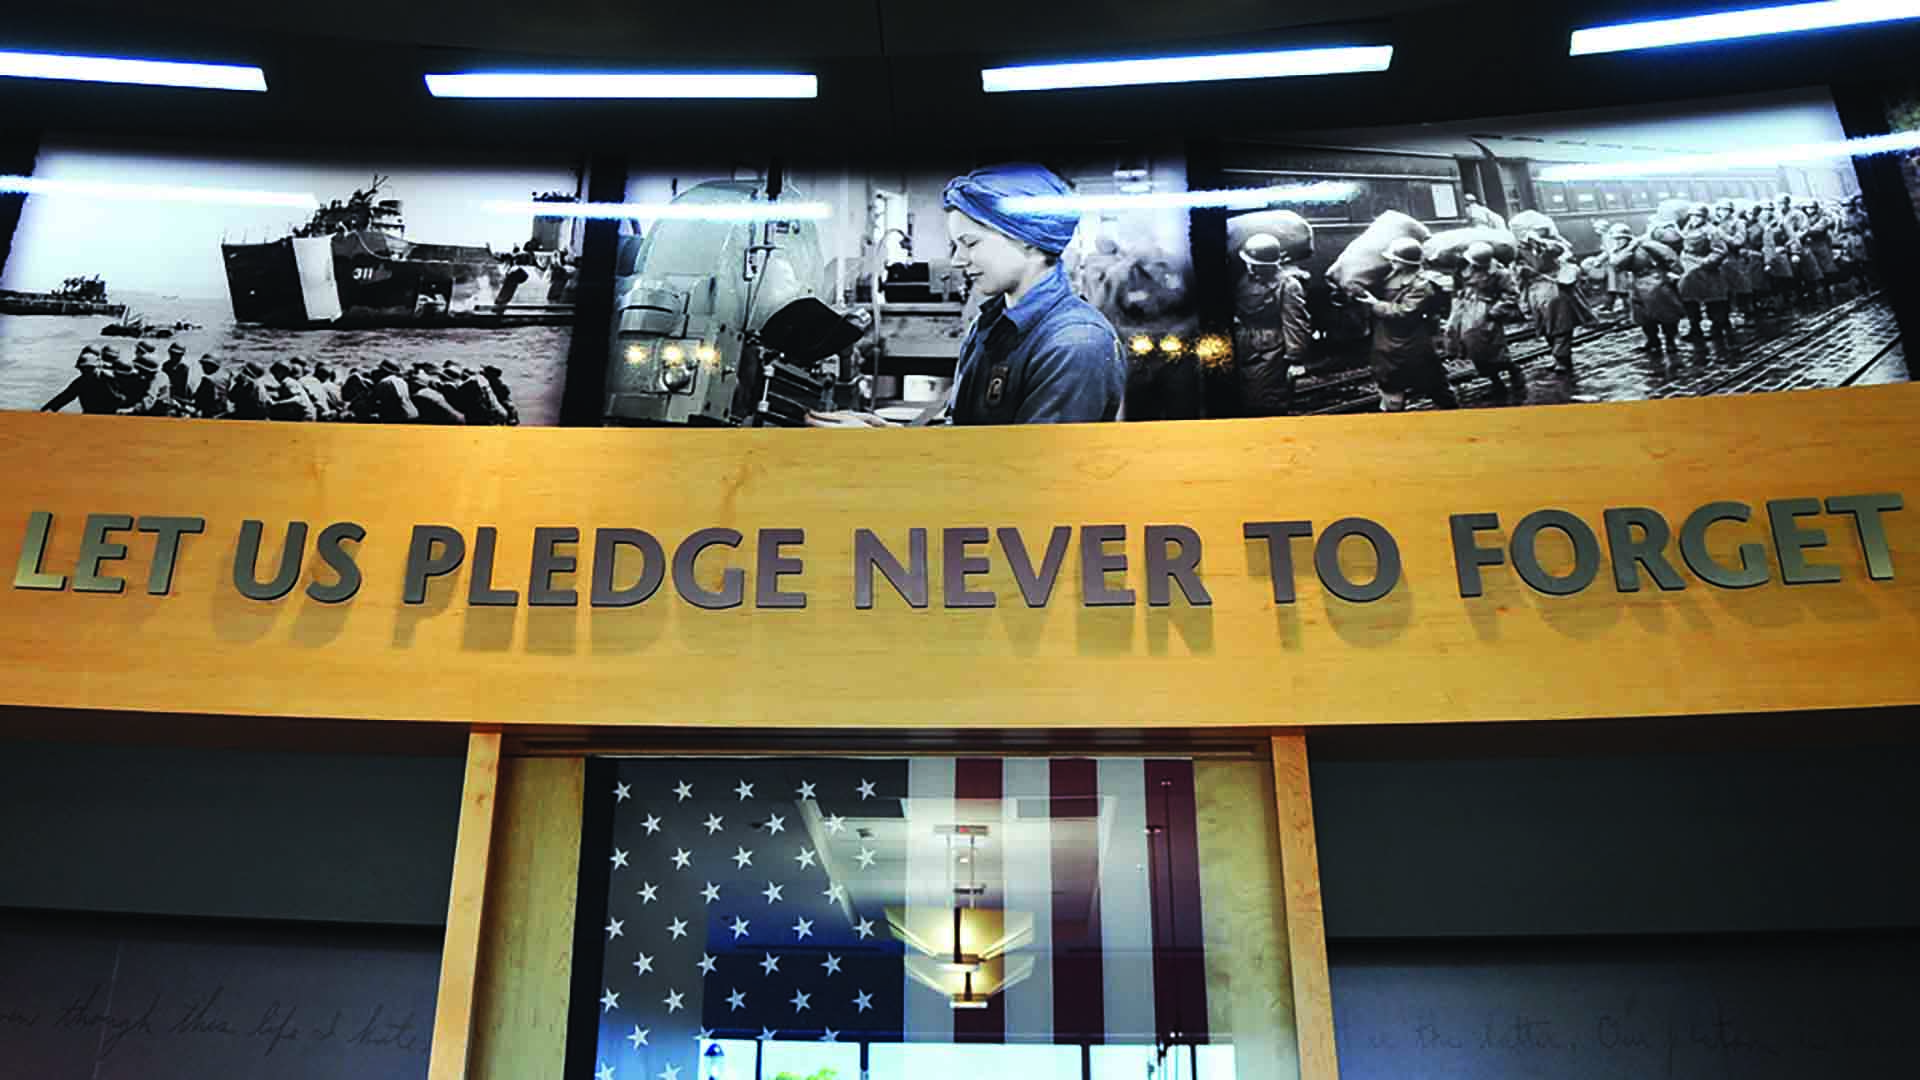 "Dimensional lettering reads ""Let us pledge never to forget"". Wall has flag in case and imagery of people who have helped in war times."